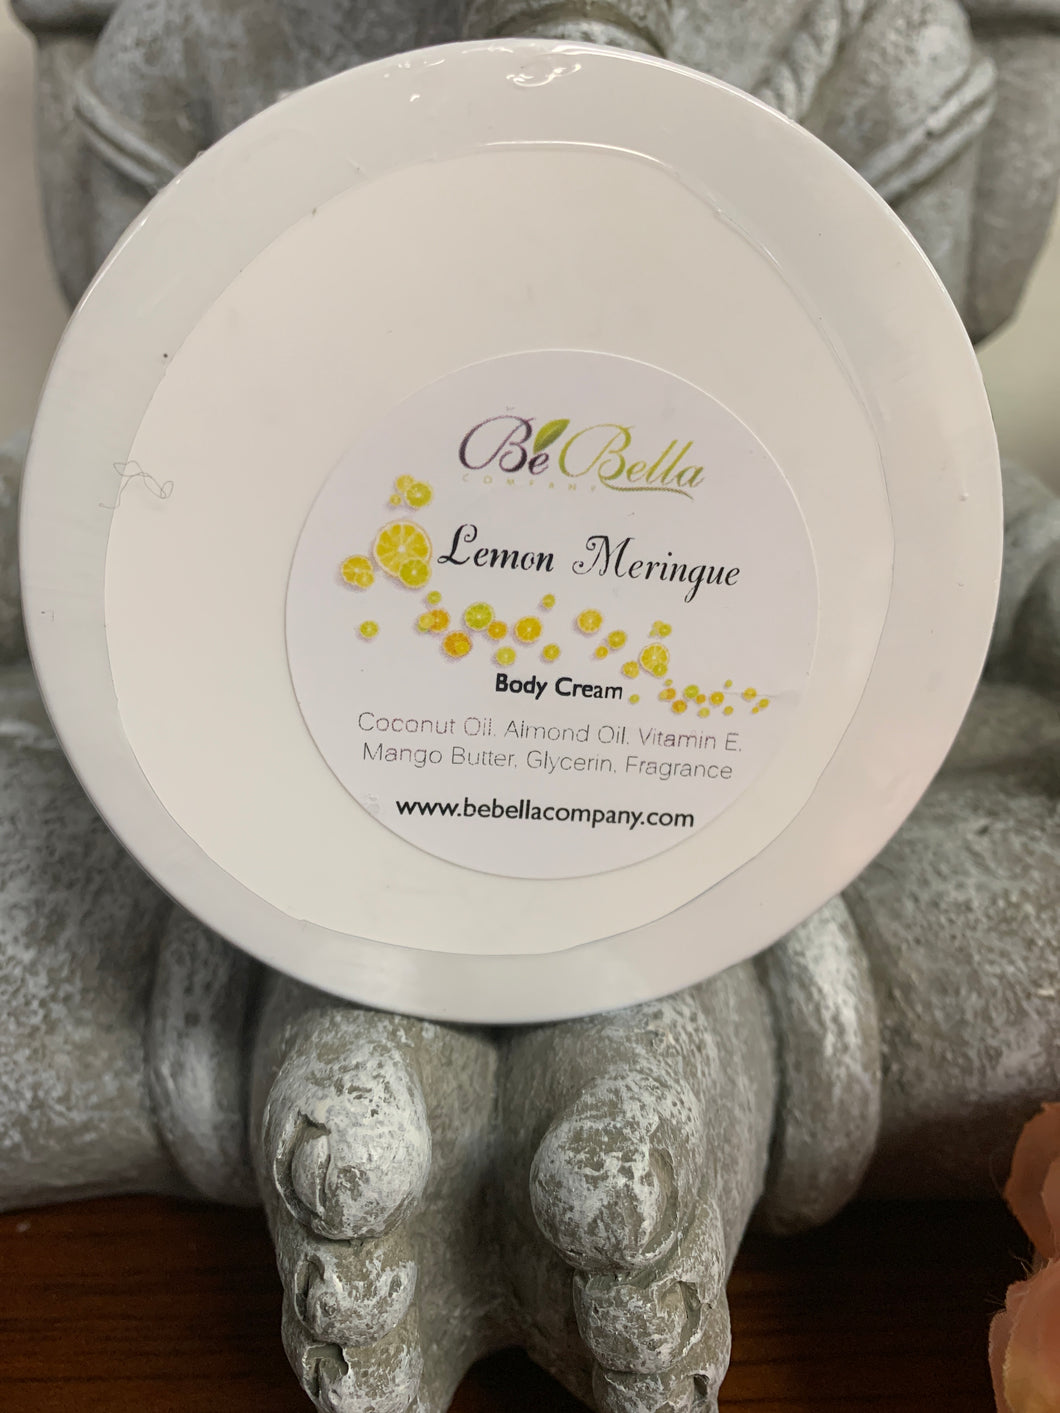 Lemon Meringue Body Cream